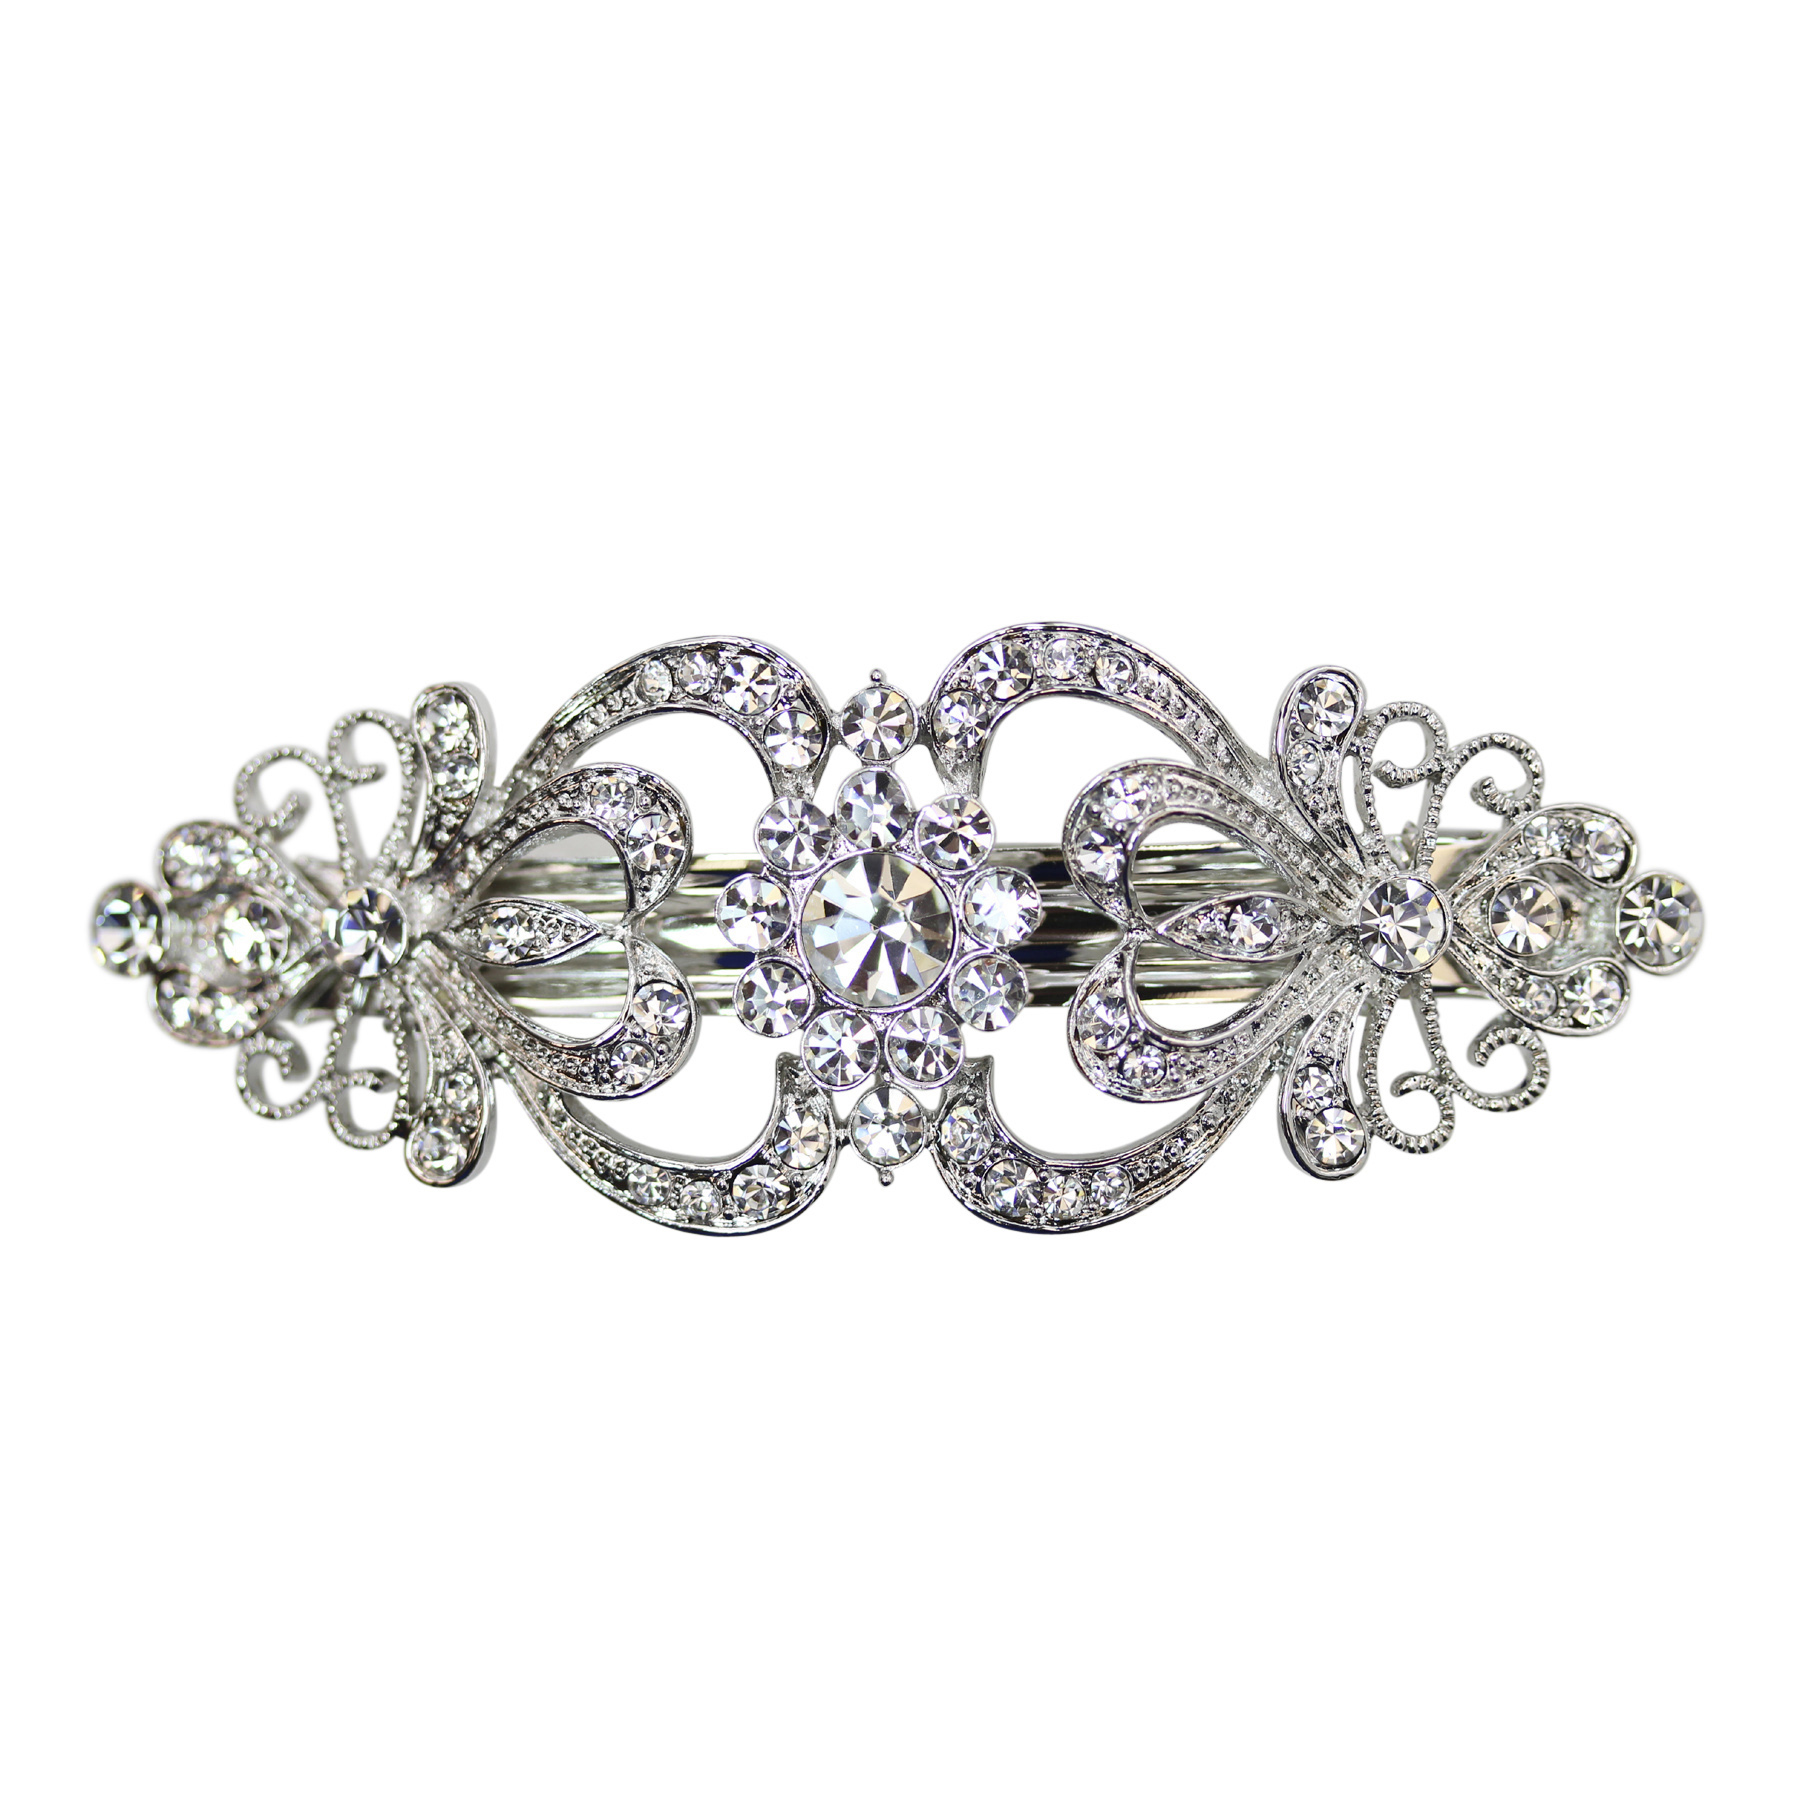 Faship Gorgeous Clear Crystal Hearts And Floral Hair Barrette